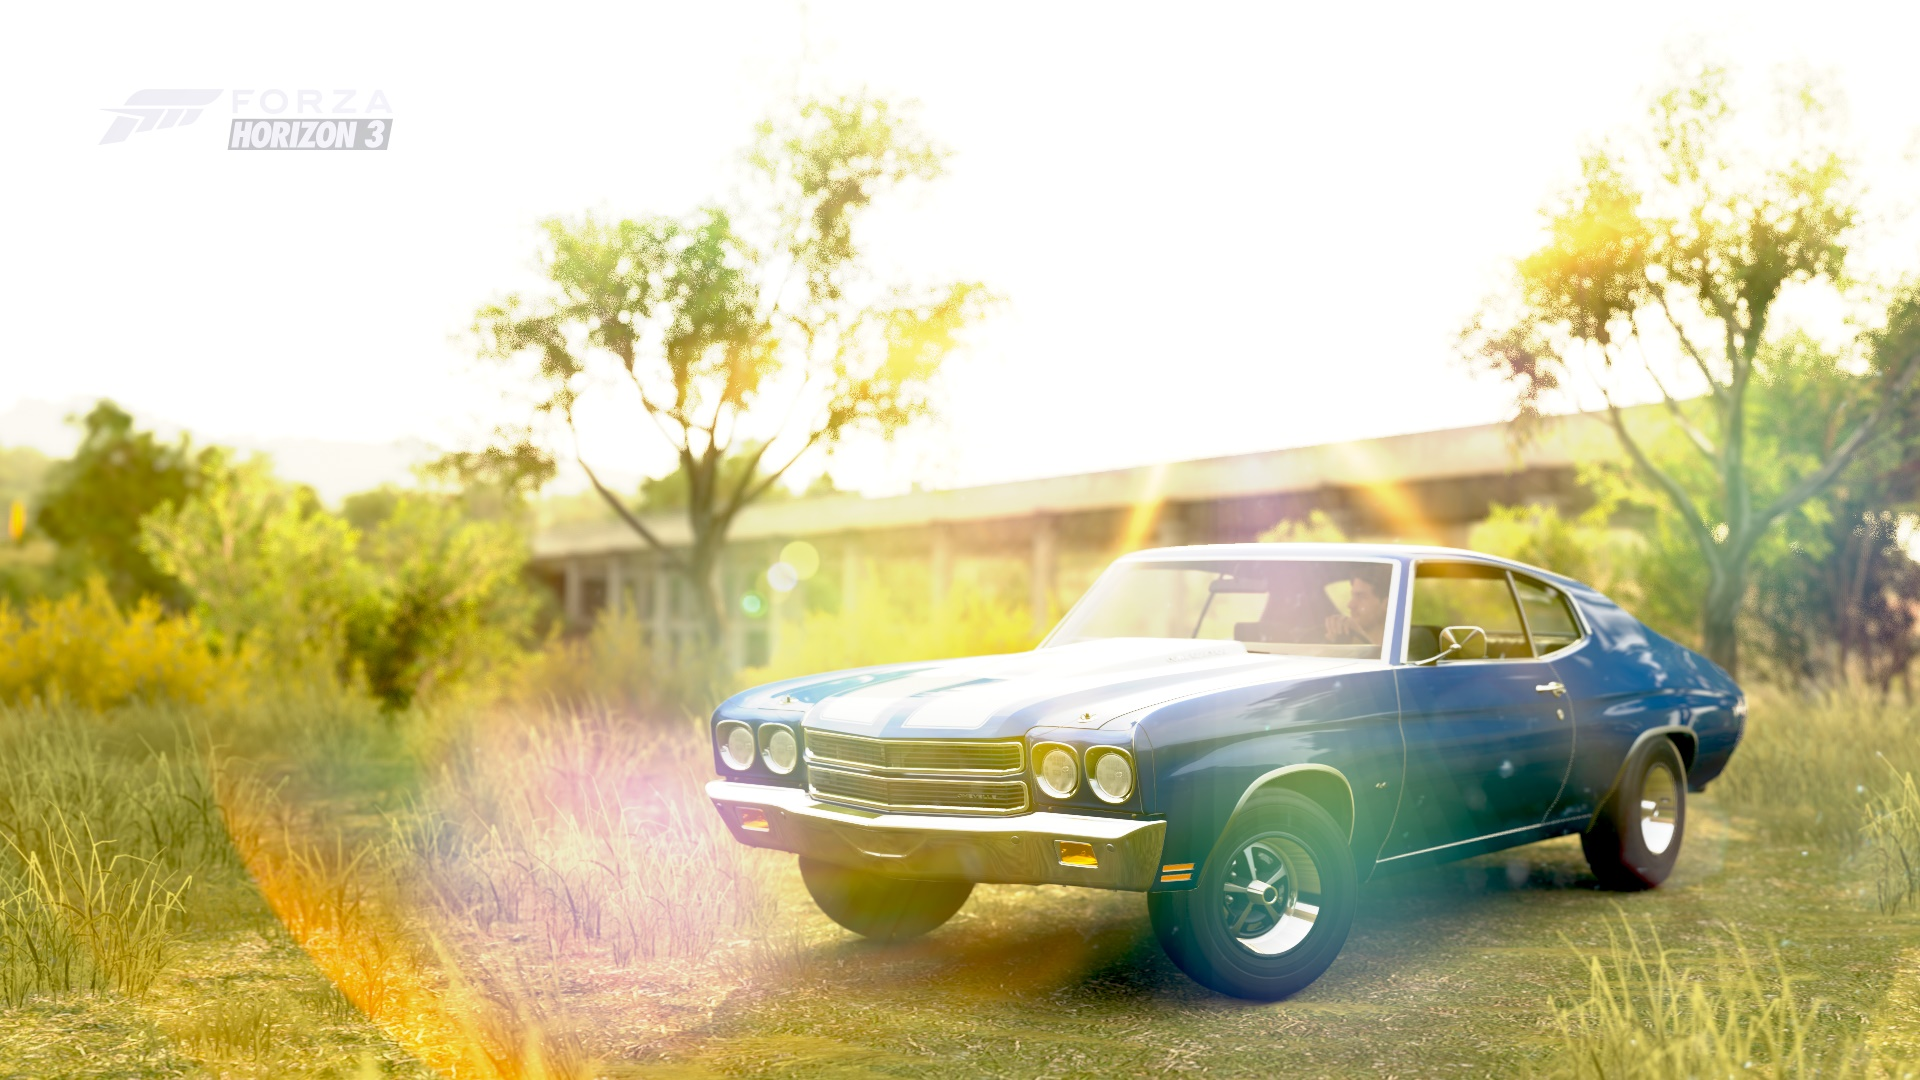 Forza Horizon 3 Cars Chevy Chevelle Ss Hello I Have A 64 That Ive 1970 Chevrolet 454 Photo By Nights Viper